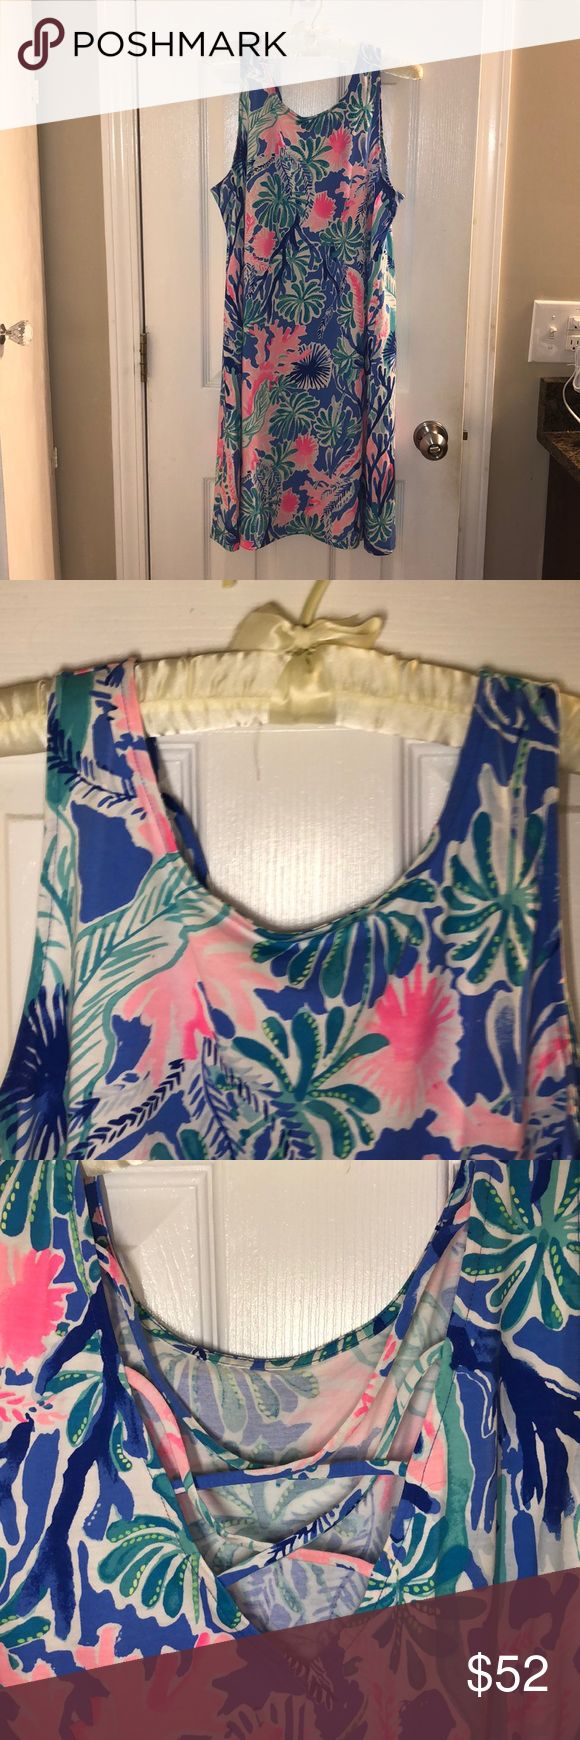 Lilly Pulitzer sleeveless dress Lilly Pulitzer summer dress in excellent condition! I am only selling because I recently had a breast reduction and it doesn't fit me around the chest anymore. This is a perfect, easy dress for the summer! Crisscross back Lilly Pulitzer Dresses